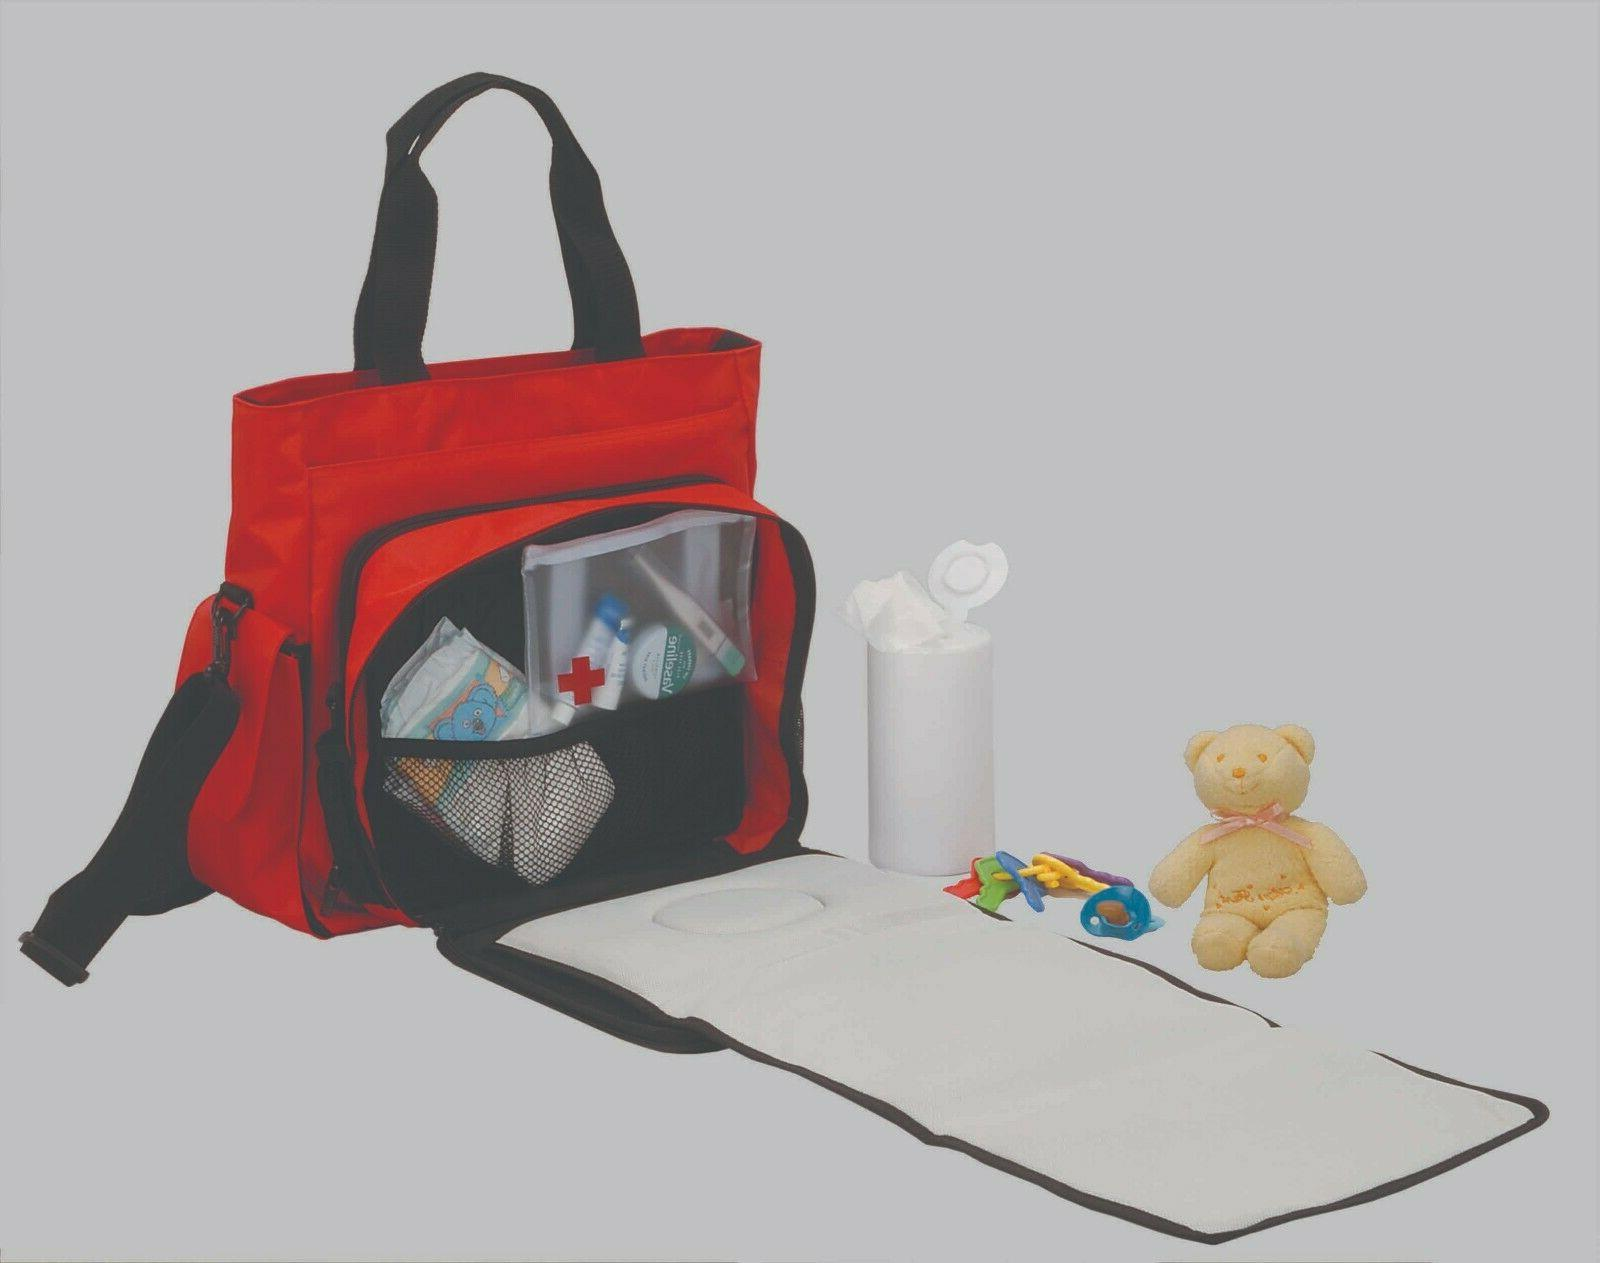 KinArt Diaper Bag with Detachable Matt Shoulder Bag